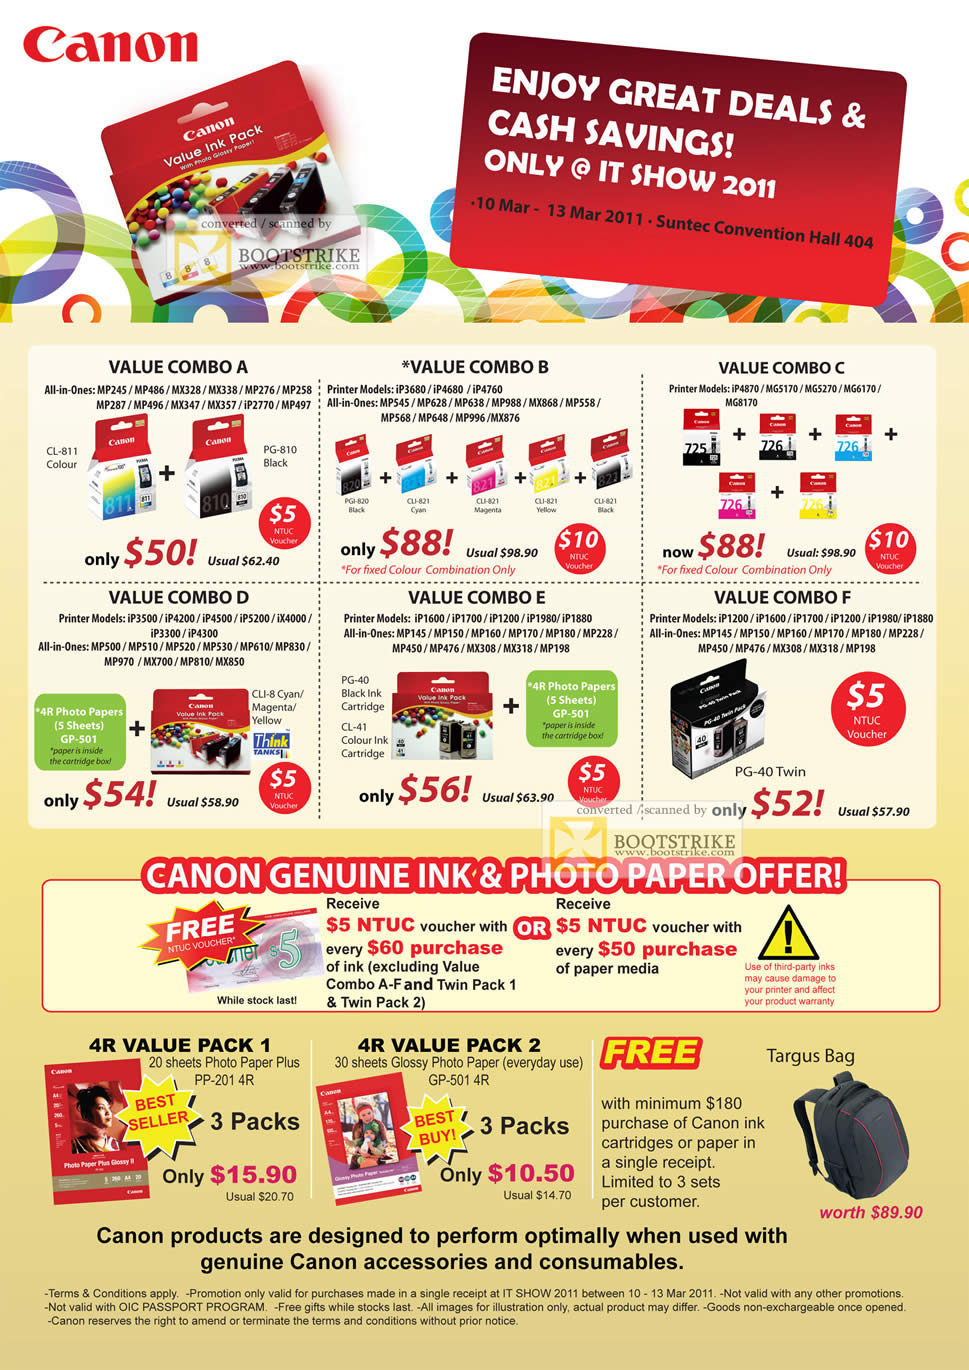 IT Show 2011 price list image brochure of Canon Ink Cartridges Glossy Photo Paper